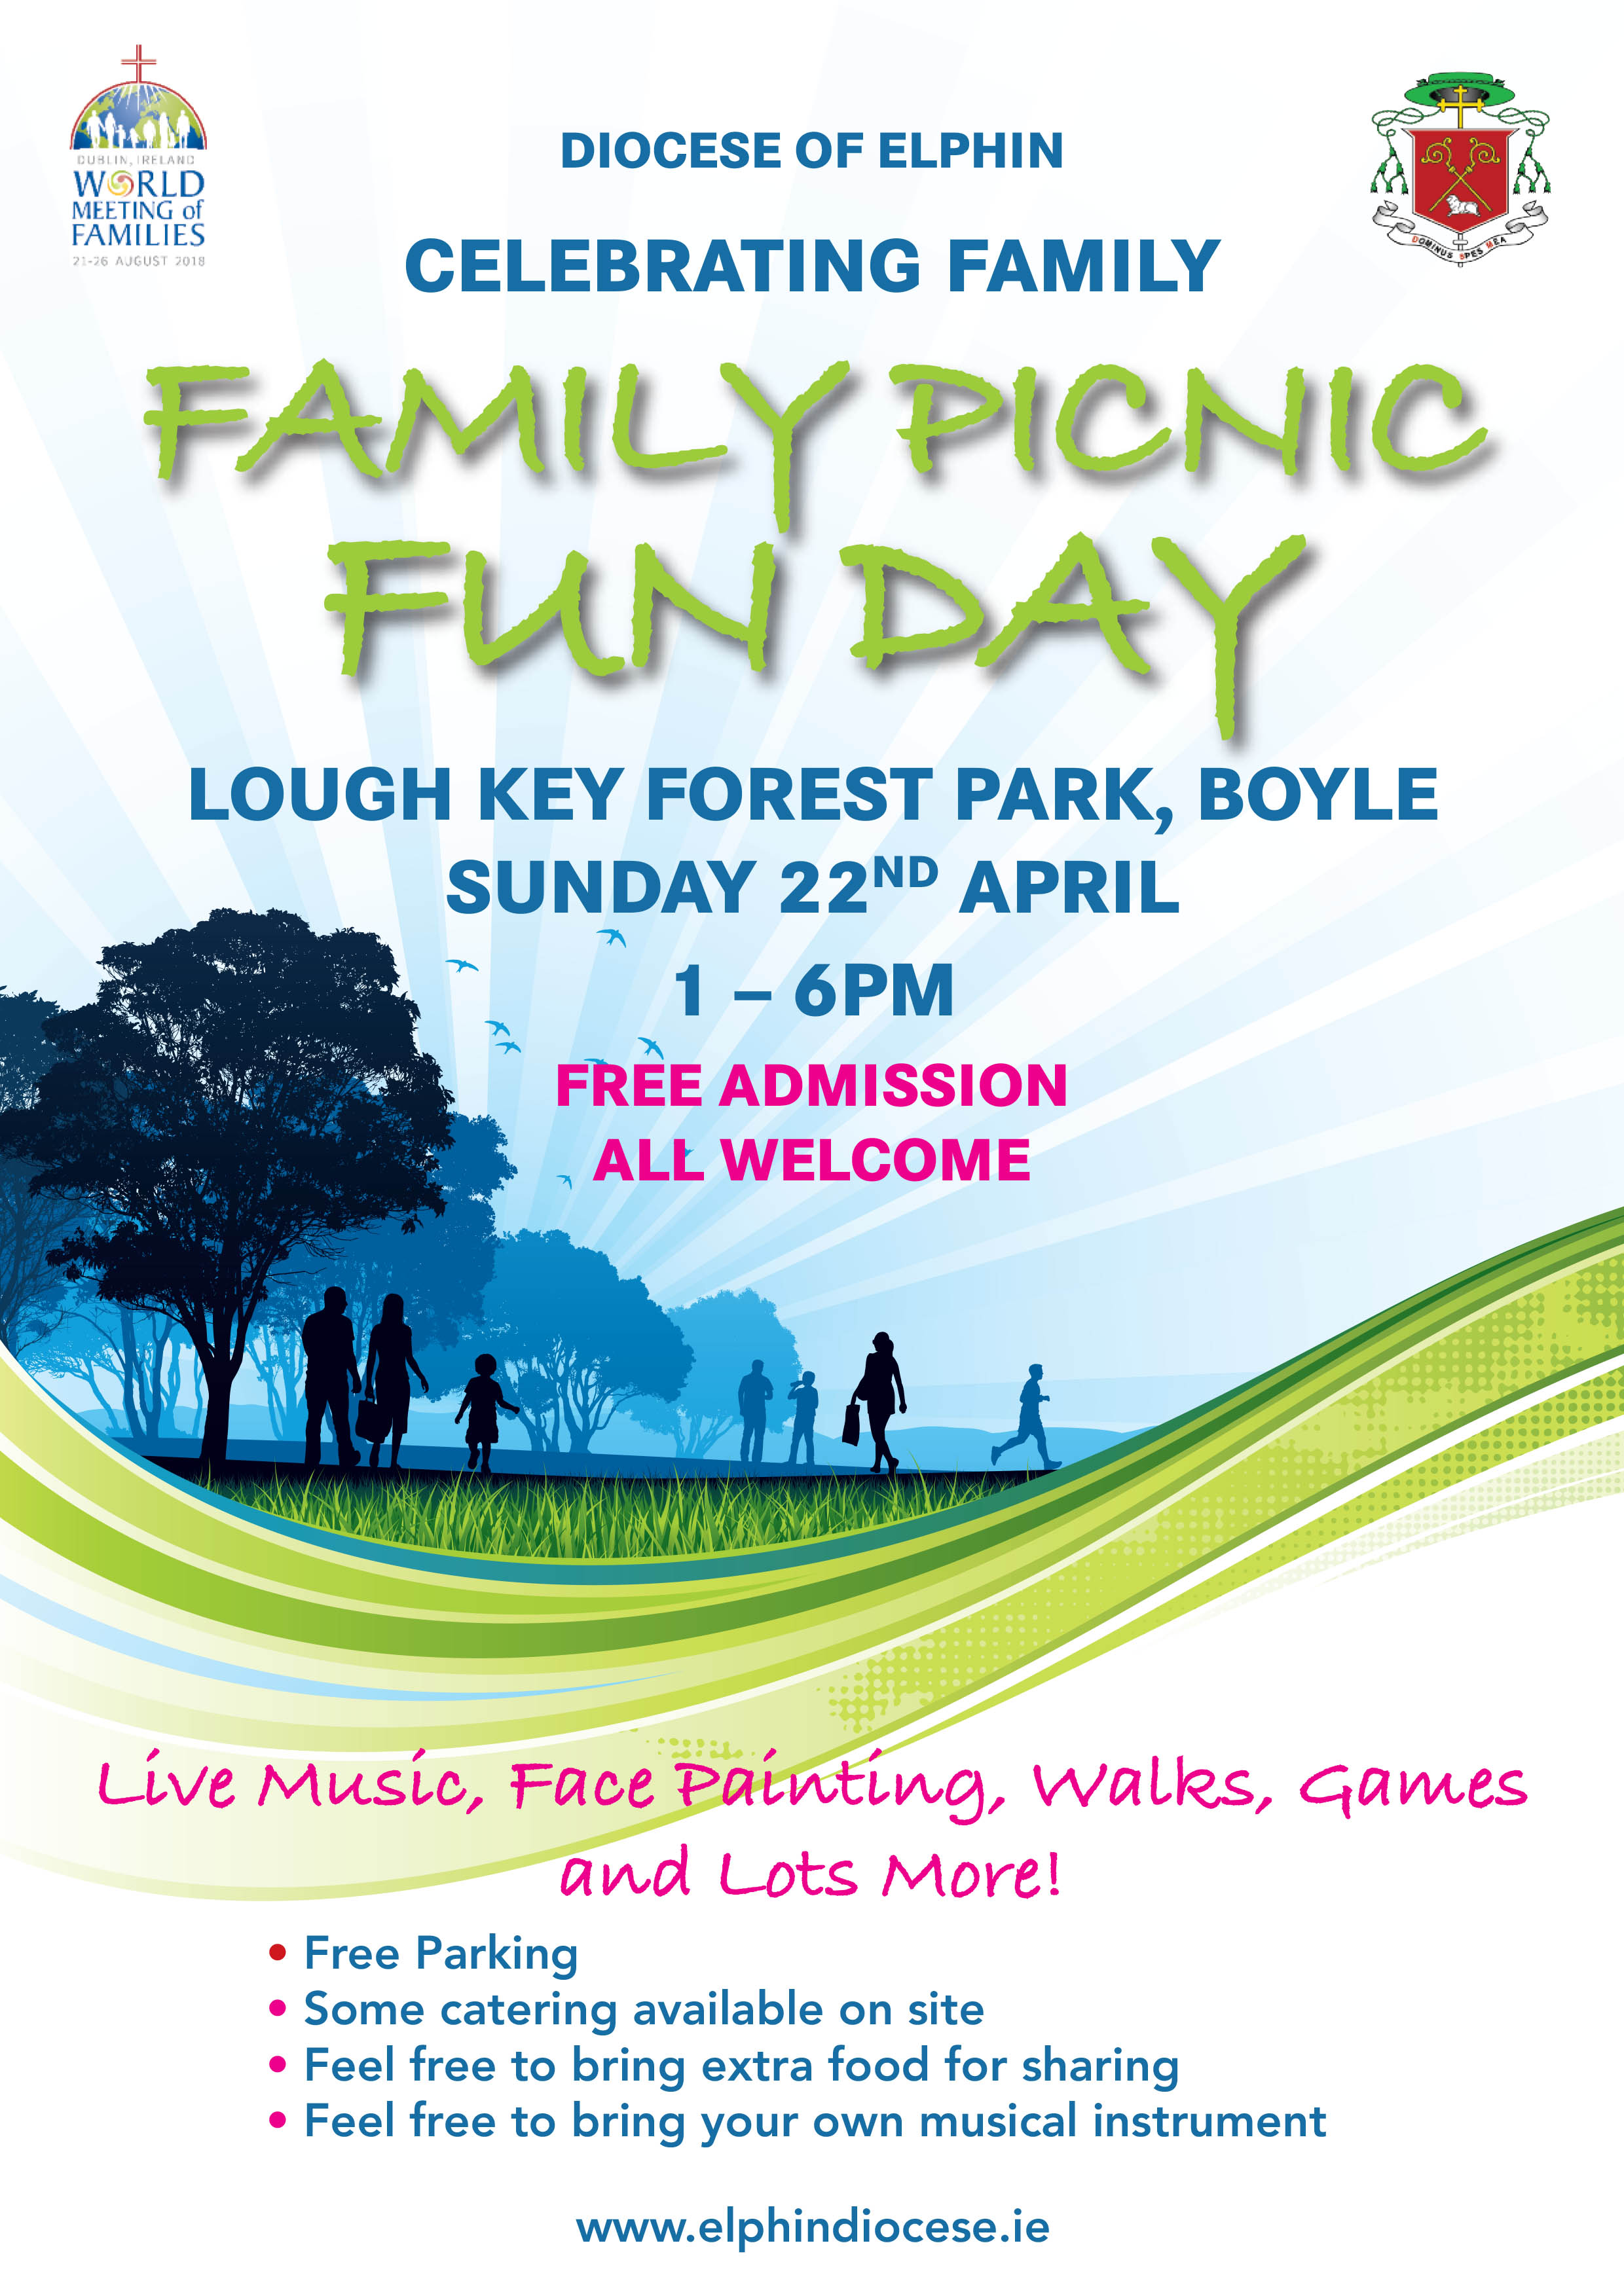 family picnic fun day elphin diocesan website